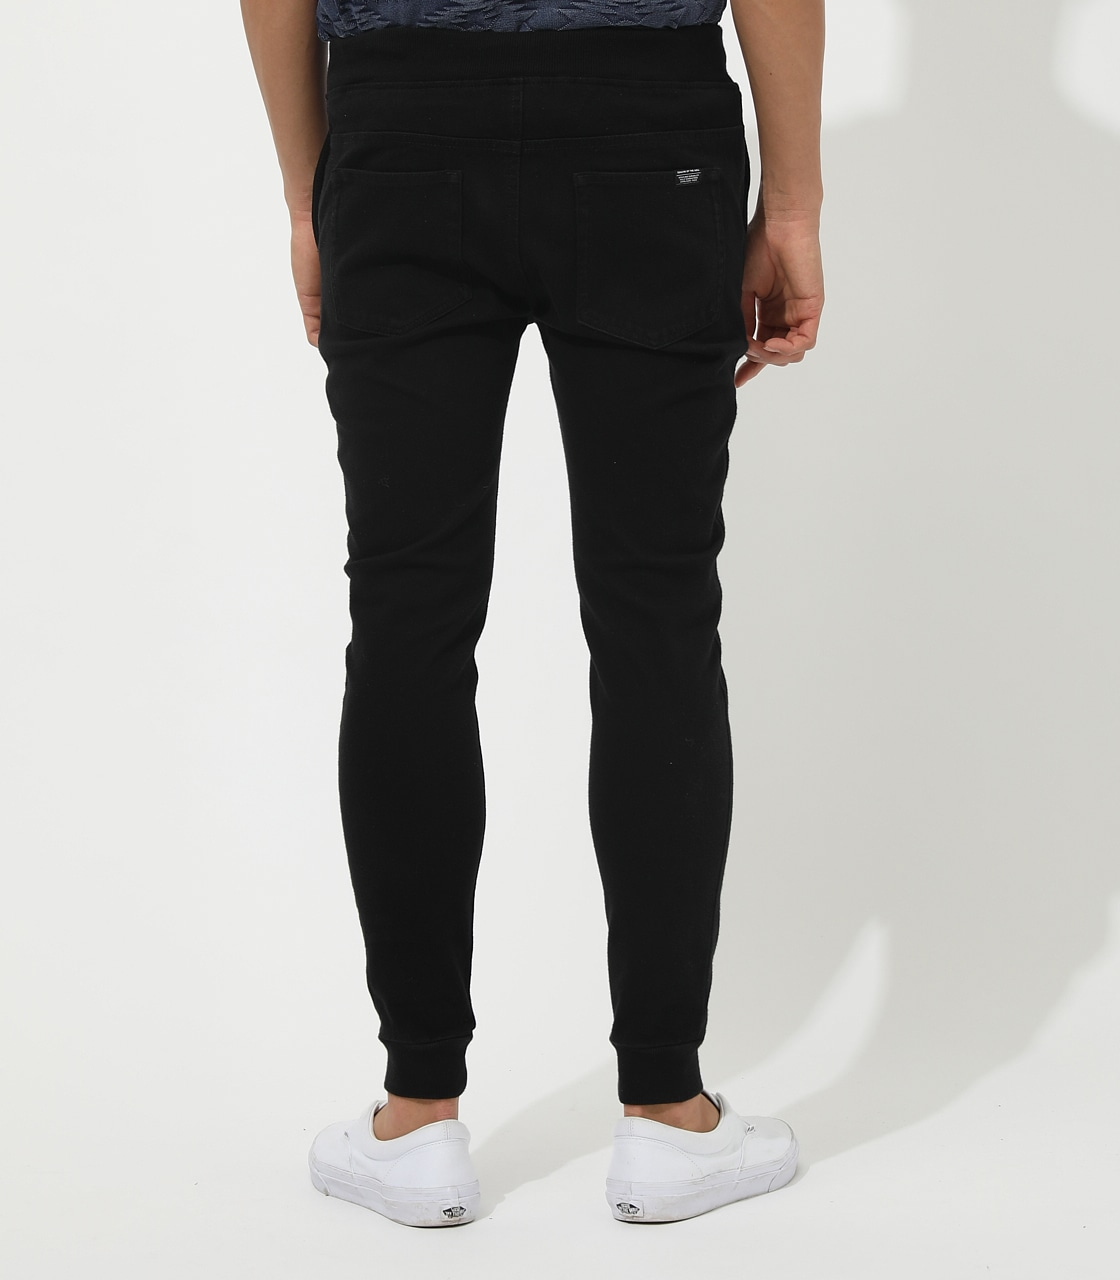 【AZUL BY MOUSSY】EASY ACTION SLIM JOGGER 詳細画像 BLK 6